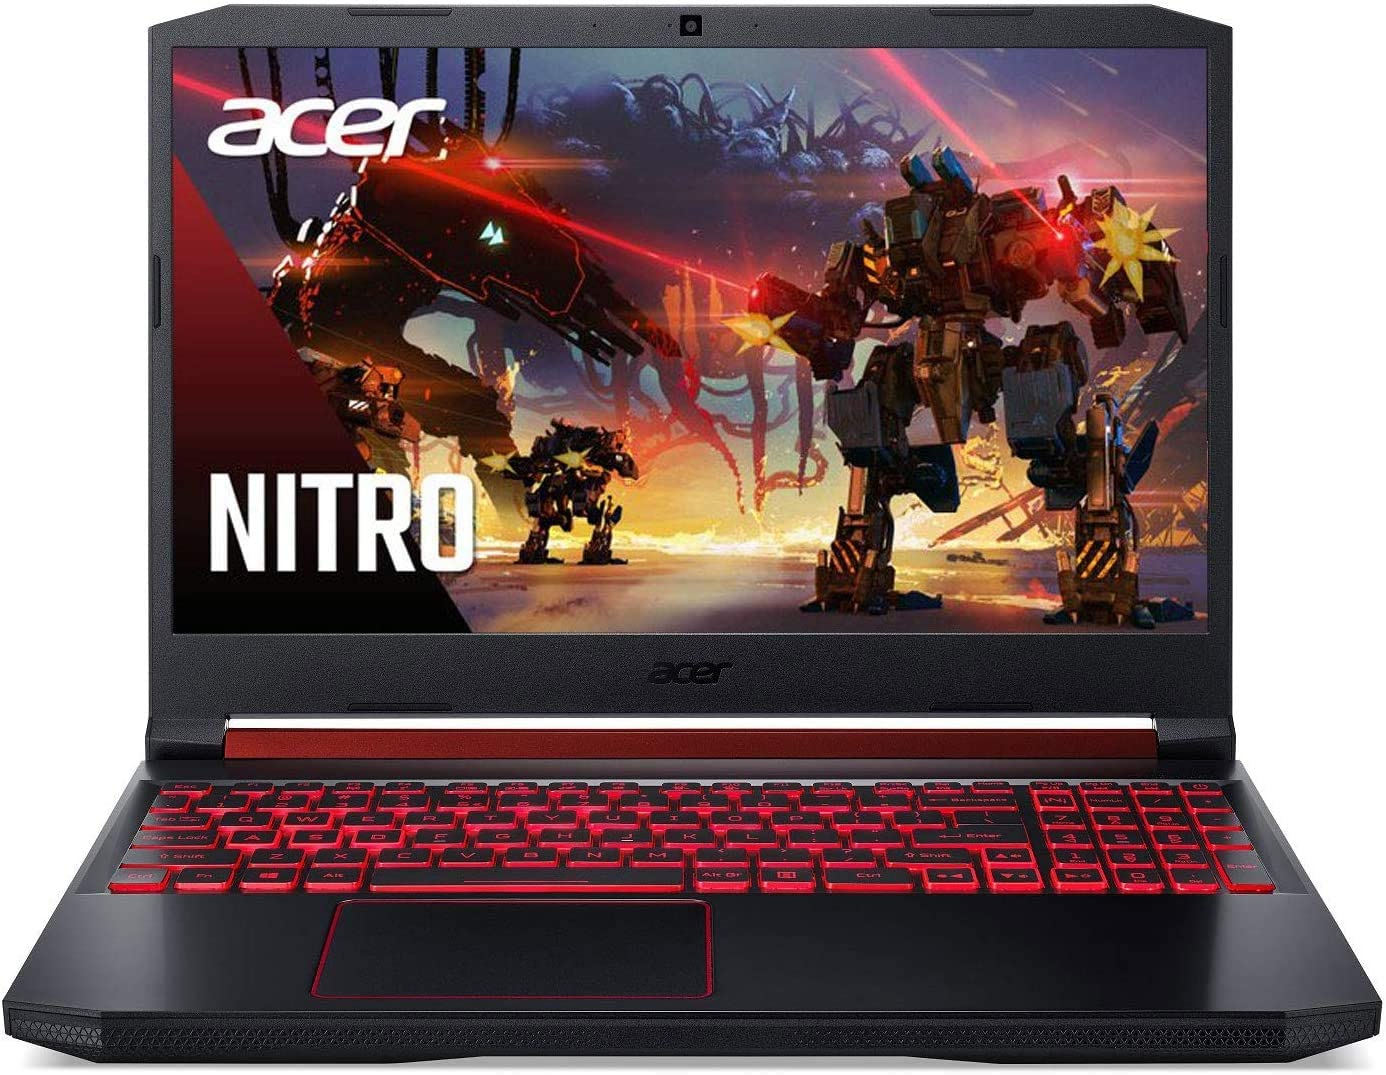 "Acer Nitro 5 Gaming Laptop, 9th Gen Intel Core i5-9300H, NVIDIA GeForce GTX 1650, 15.6"" Full HD IPS Display, WiFi 6, Waves MaxxAudio, Backlit Keyboard (32GB RAM/512GB PCIe SSD/1TB HDD)"